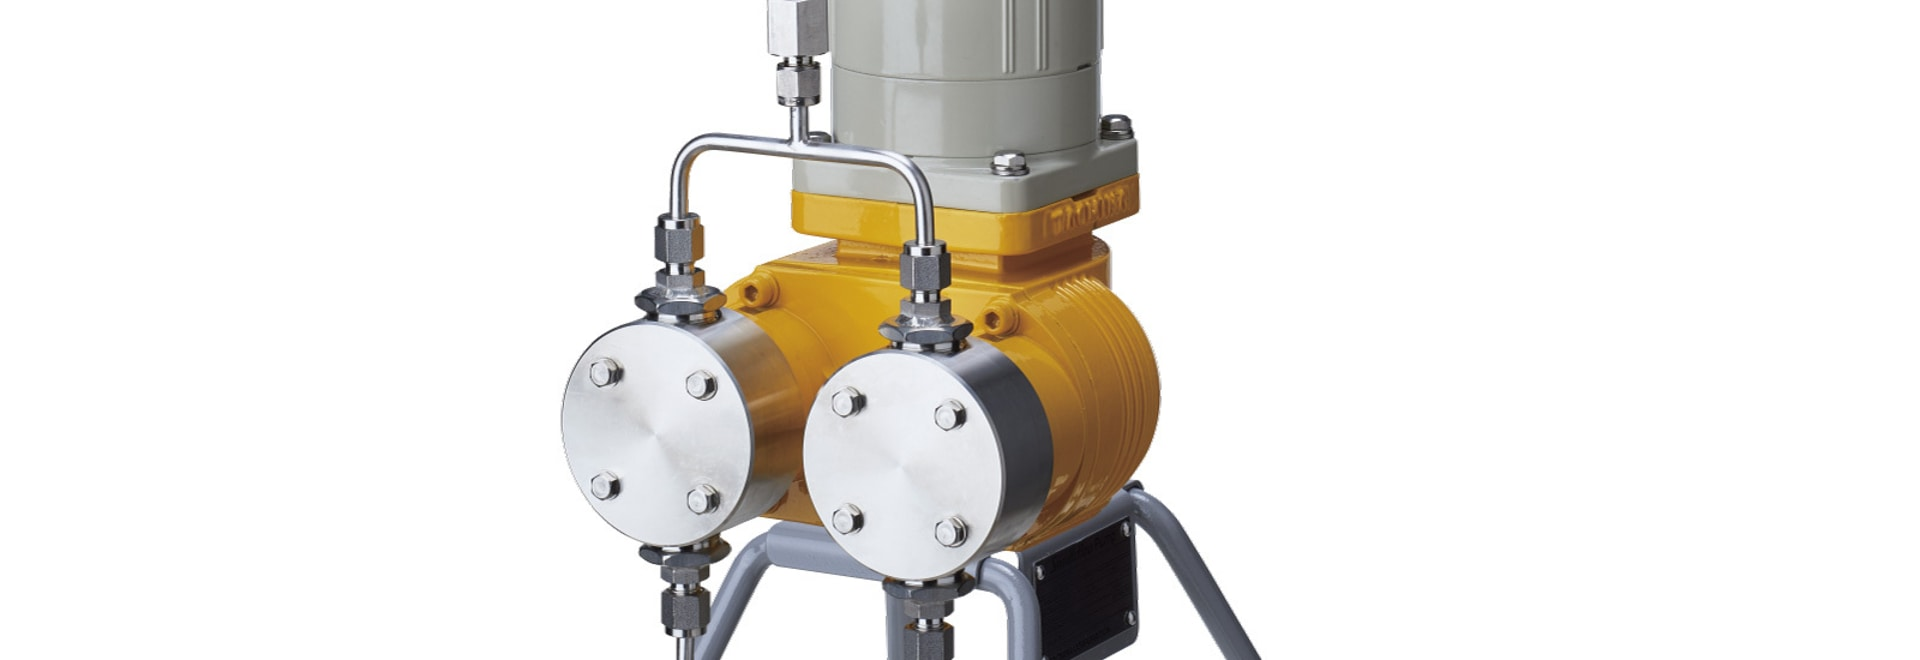 XPL Series Smoothflow Pump